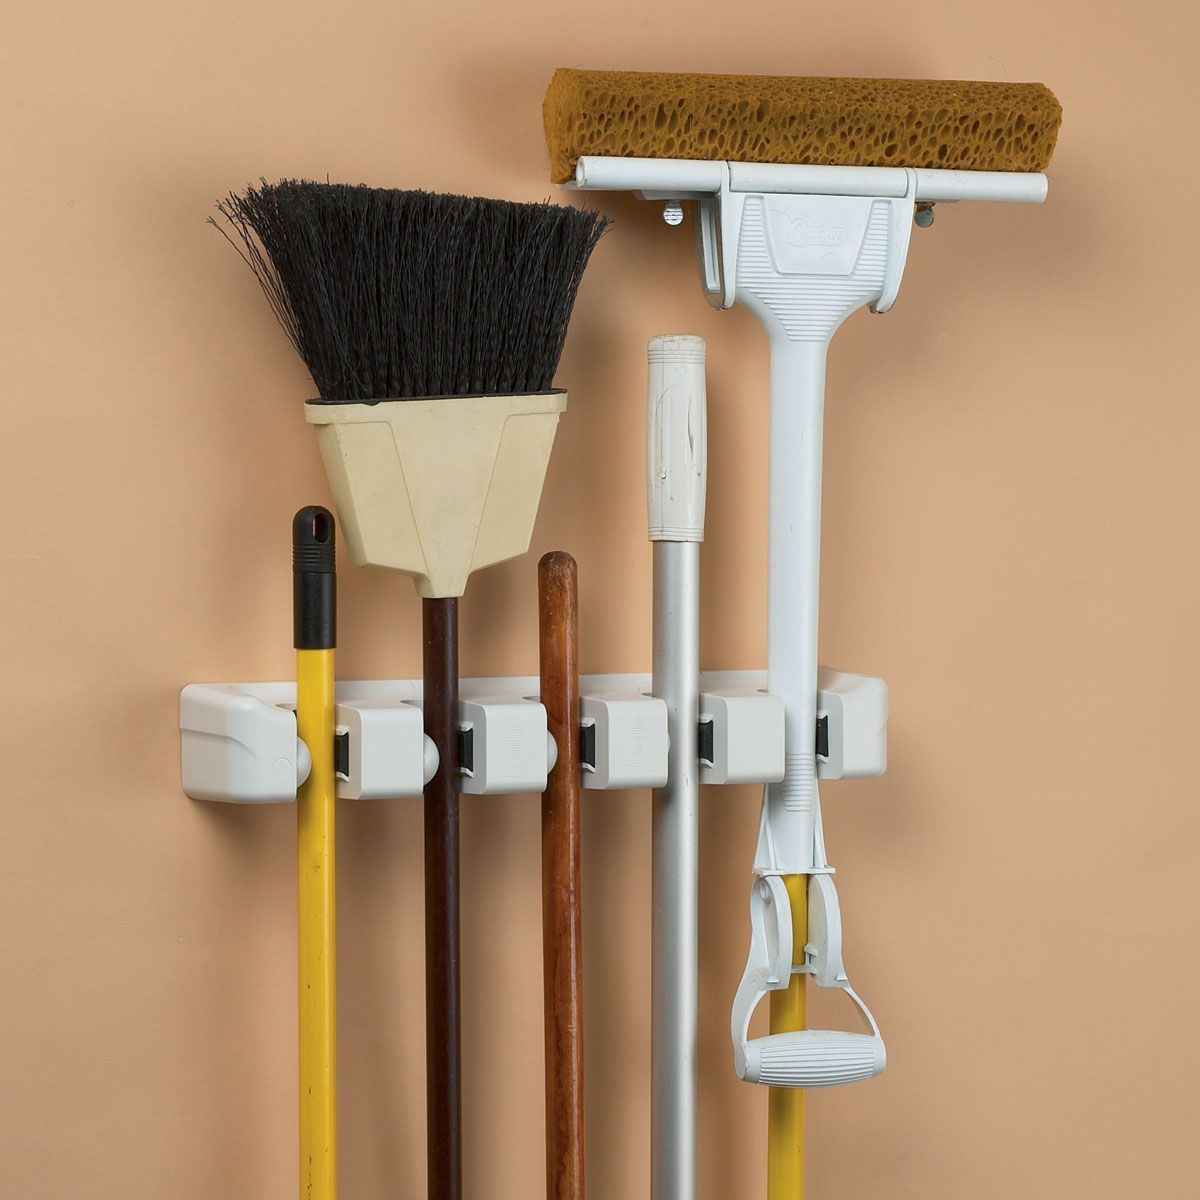 broom u0026 mop holder - Broom Holder